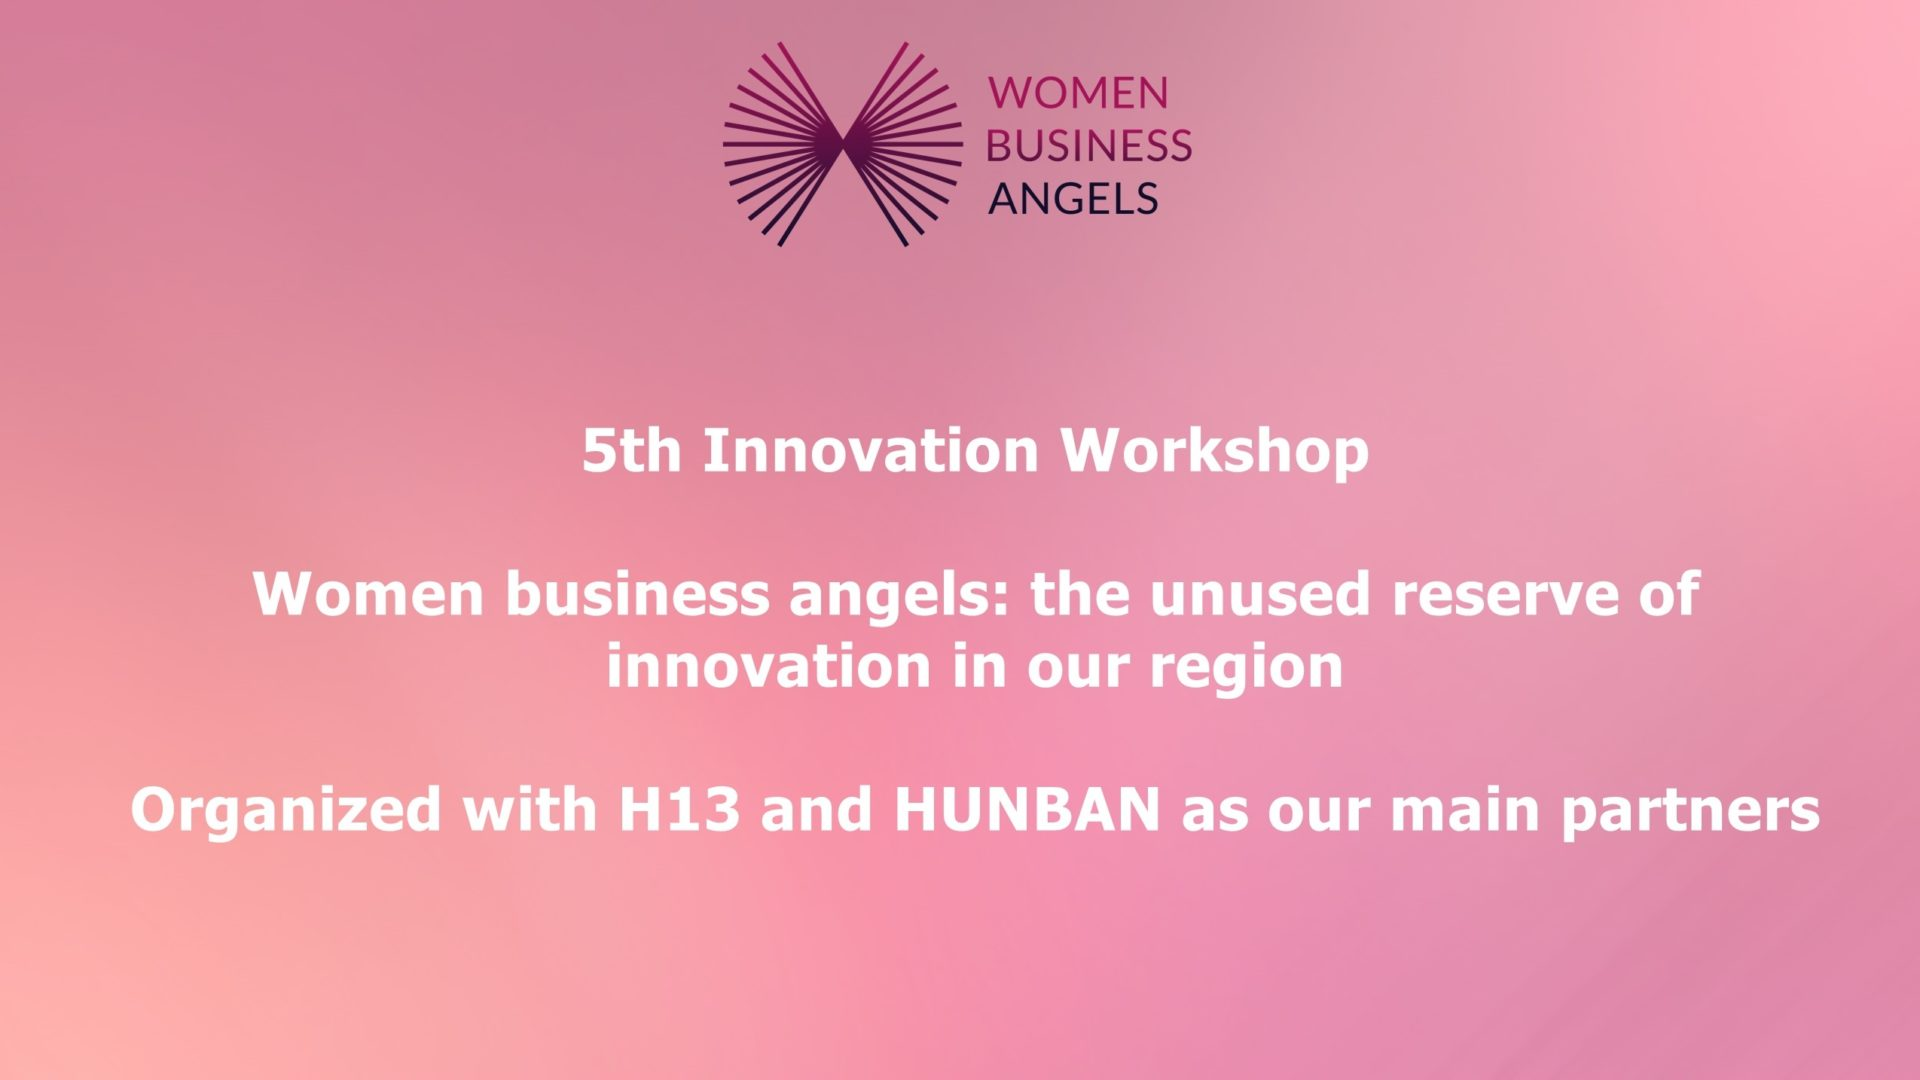 Women/Business/Angels 5th Innovation Workshop in Budapest. Women business angels: the unused reserve of innovation in our region. We had 80 participants in at a session on innovation  and women in English